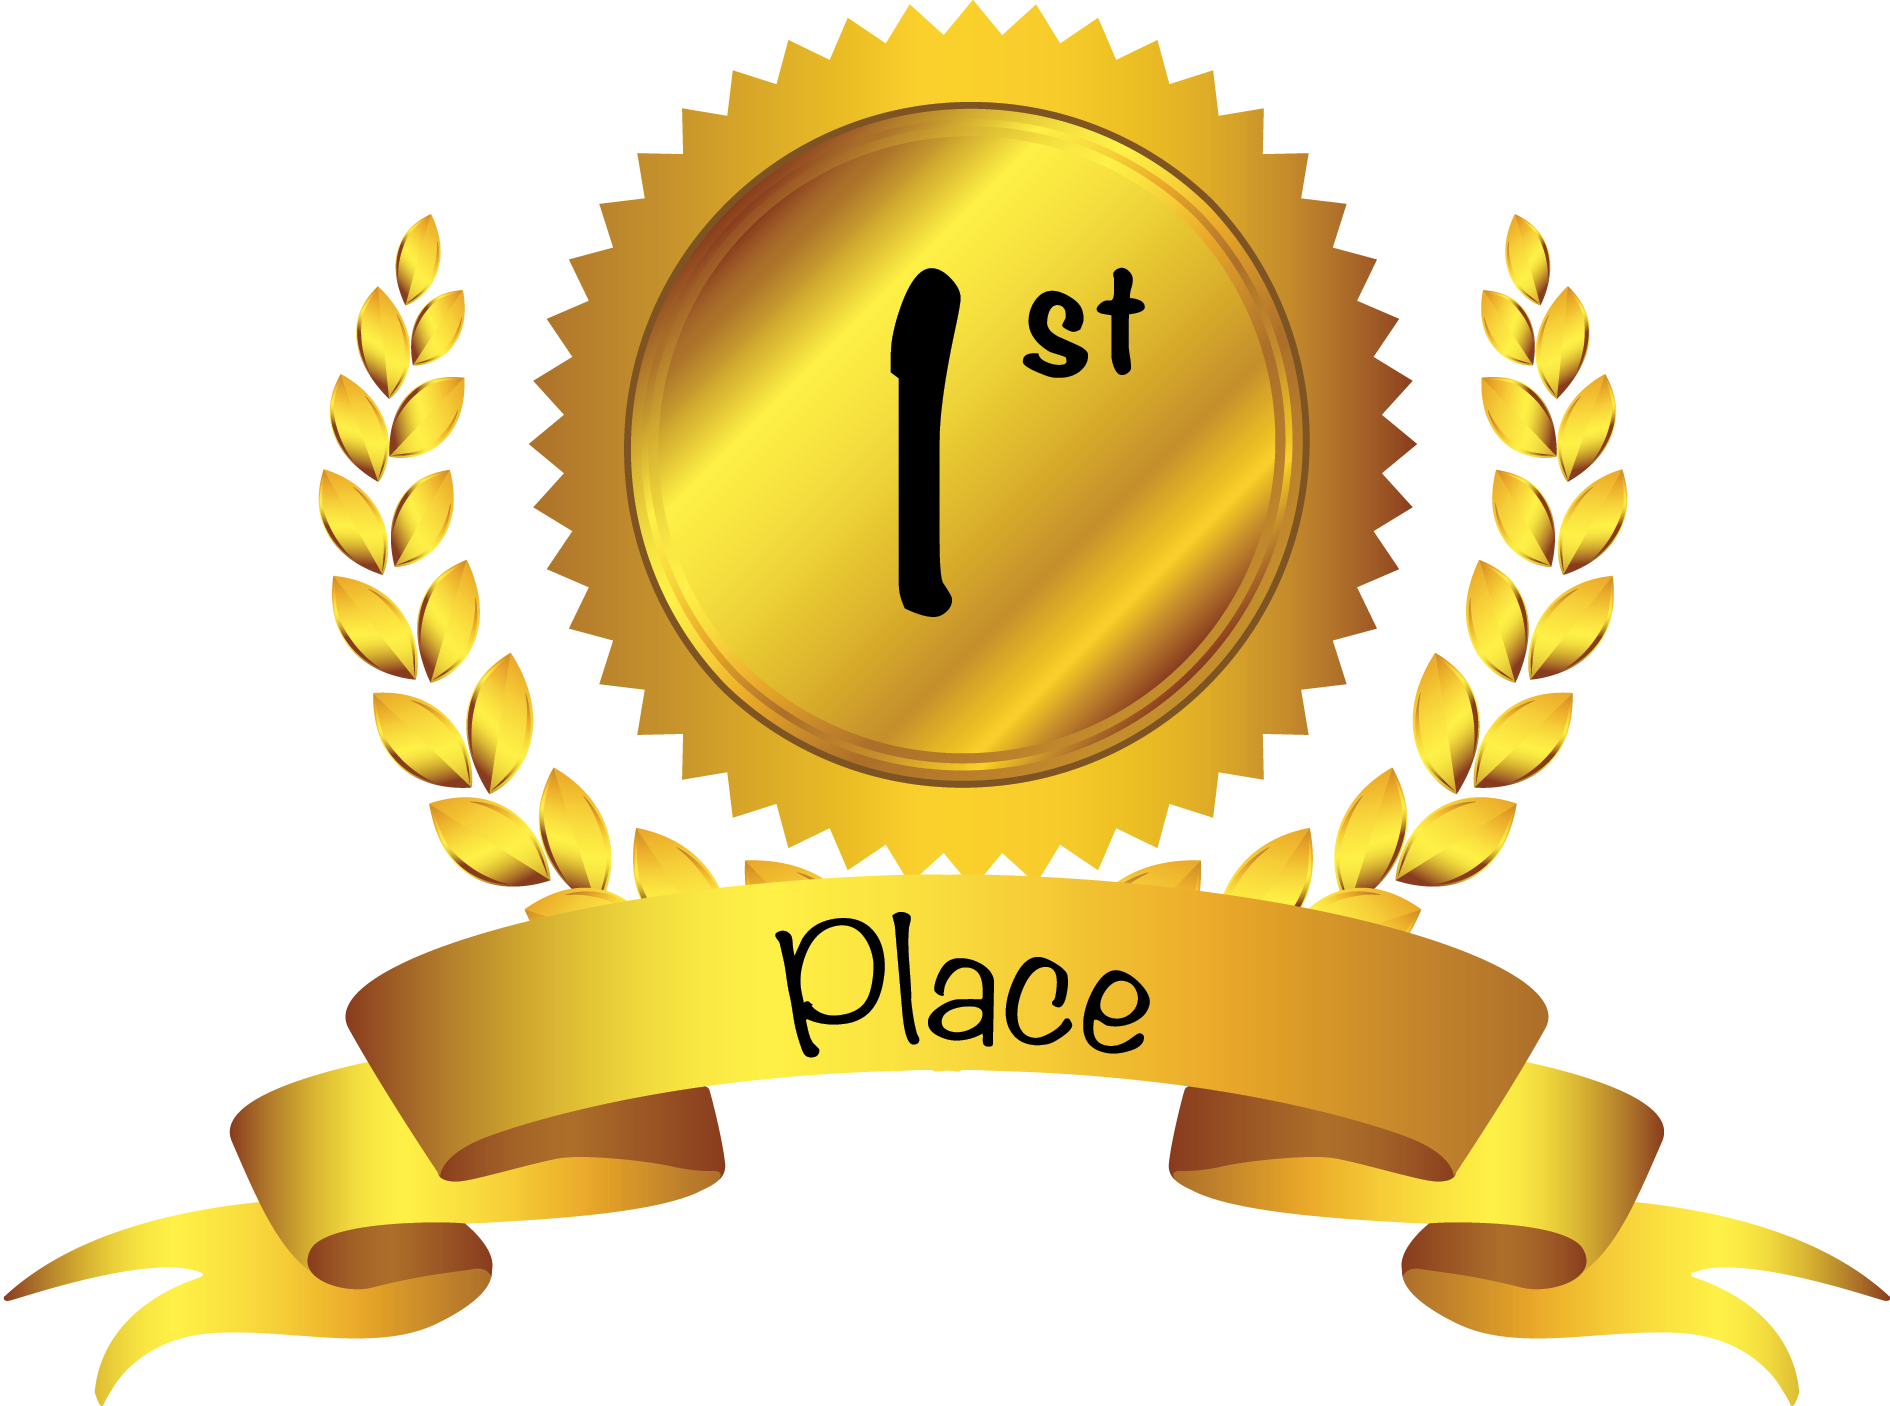 1st place award clipart gold prizes loyalty contest background creativity female finishers male drum final round libor yale prize dec